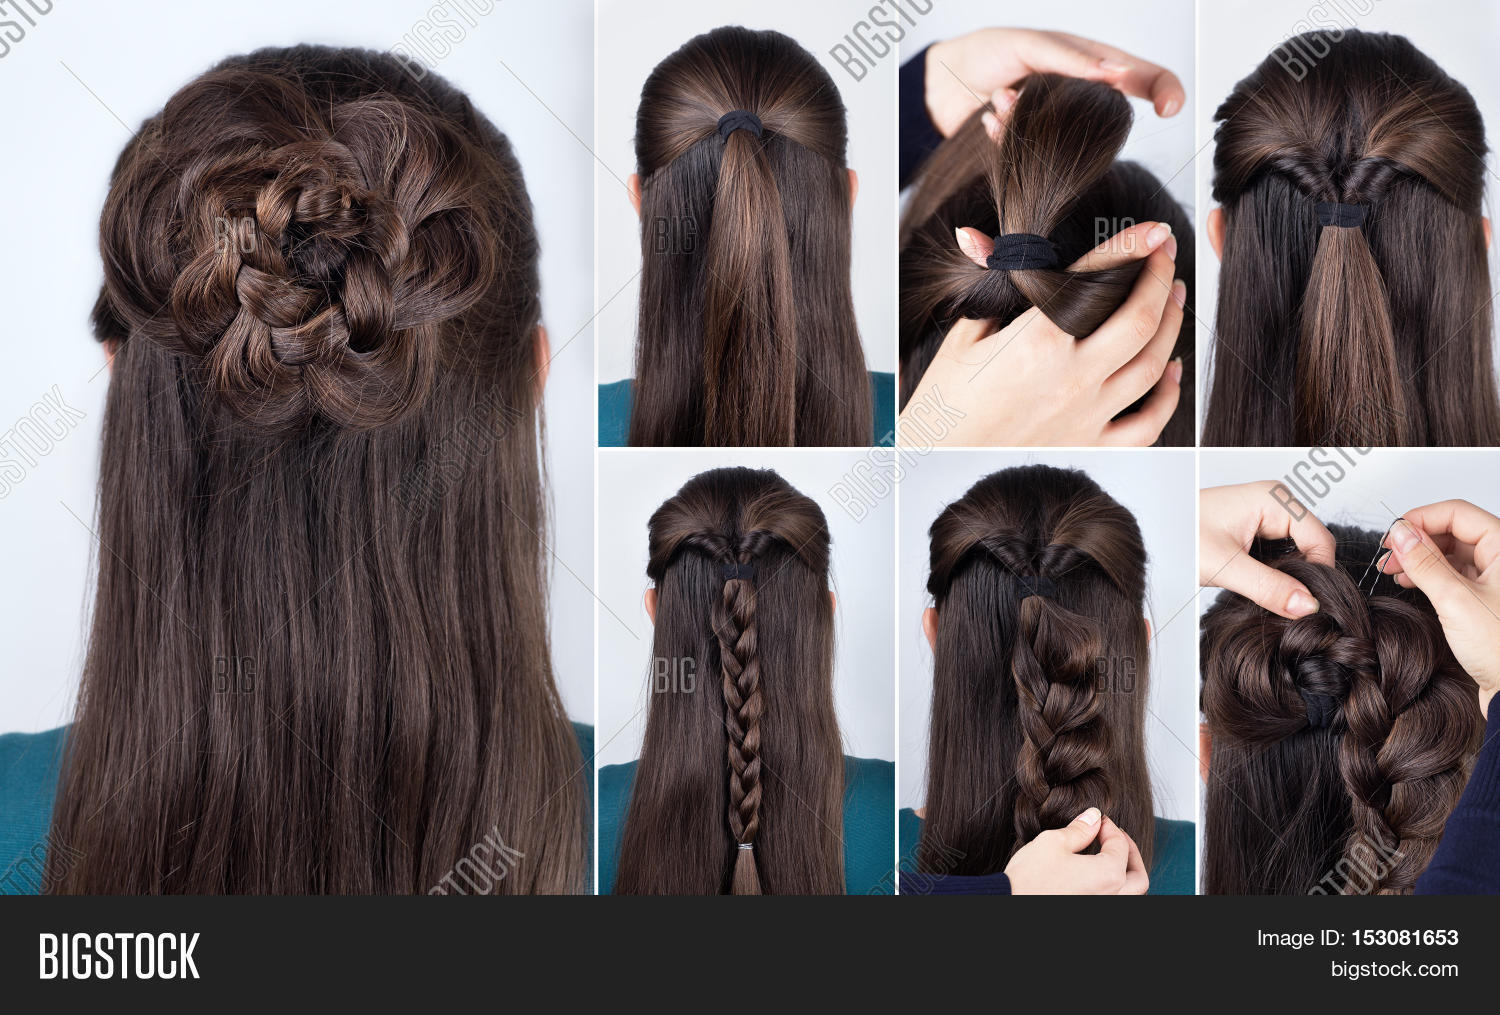 Astounding Hairstyle Braided Rose Tutorial Step By Step Hairstyle For Long Short Hairstyles Gunalazisus